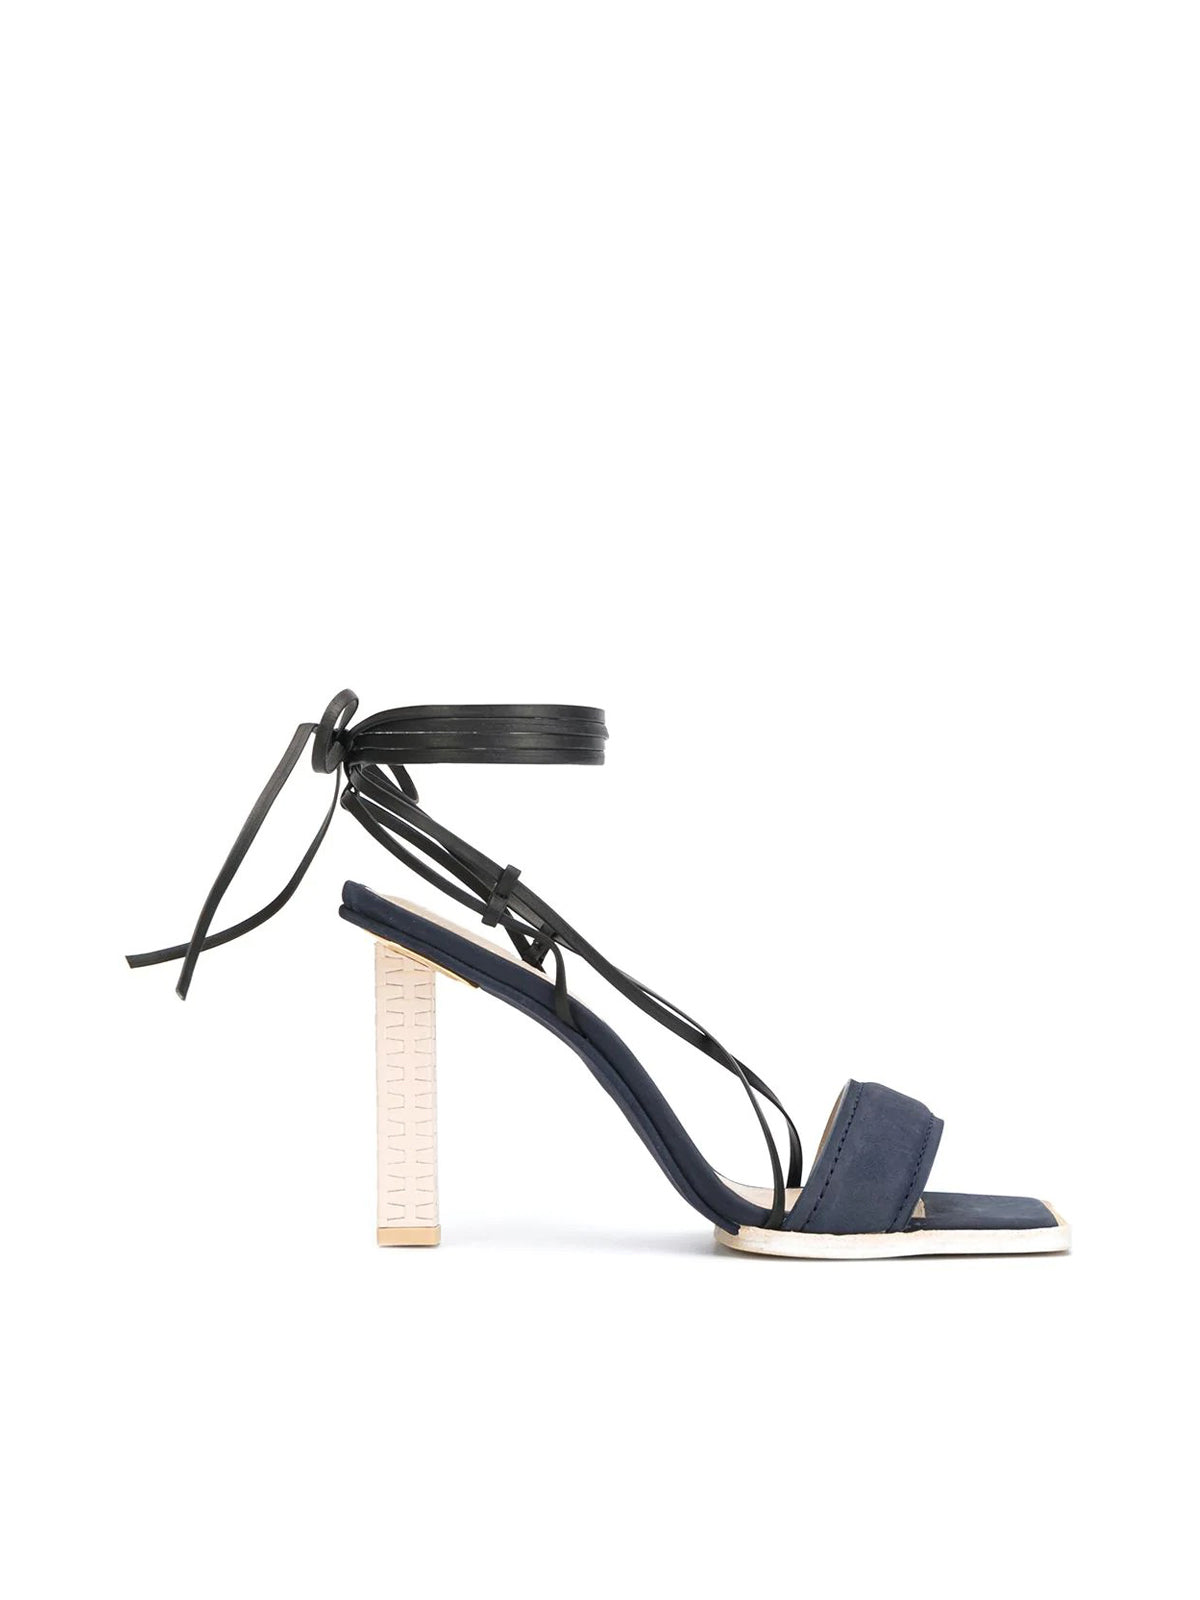 Sandals with square toe